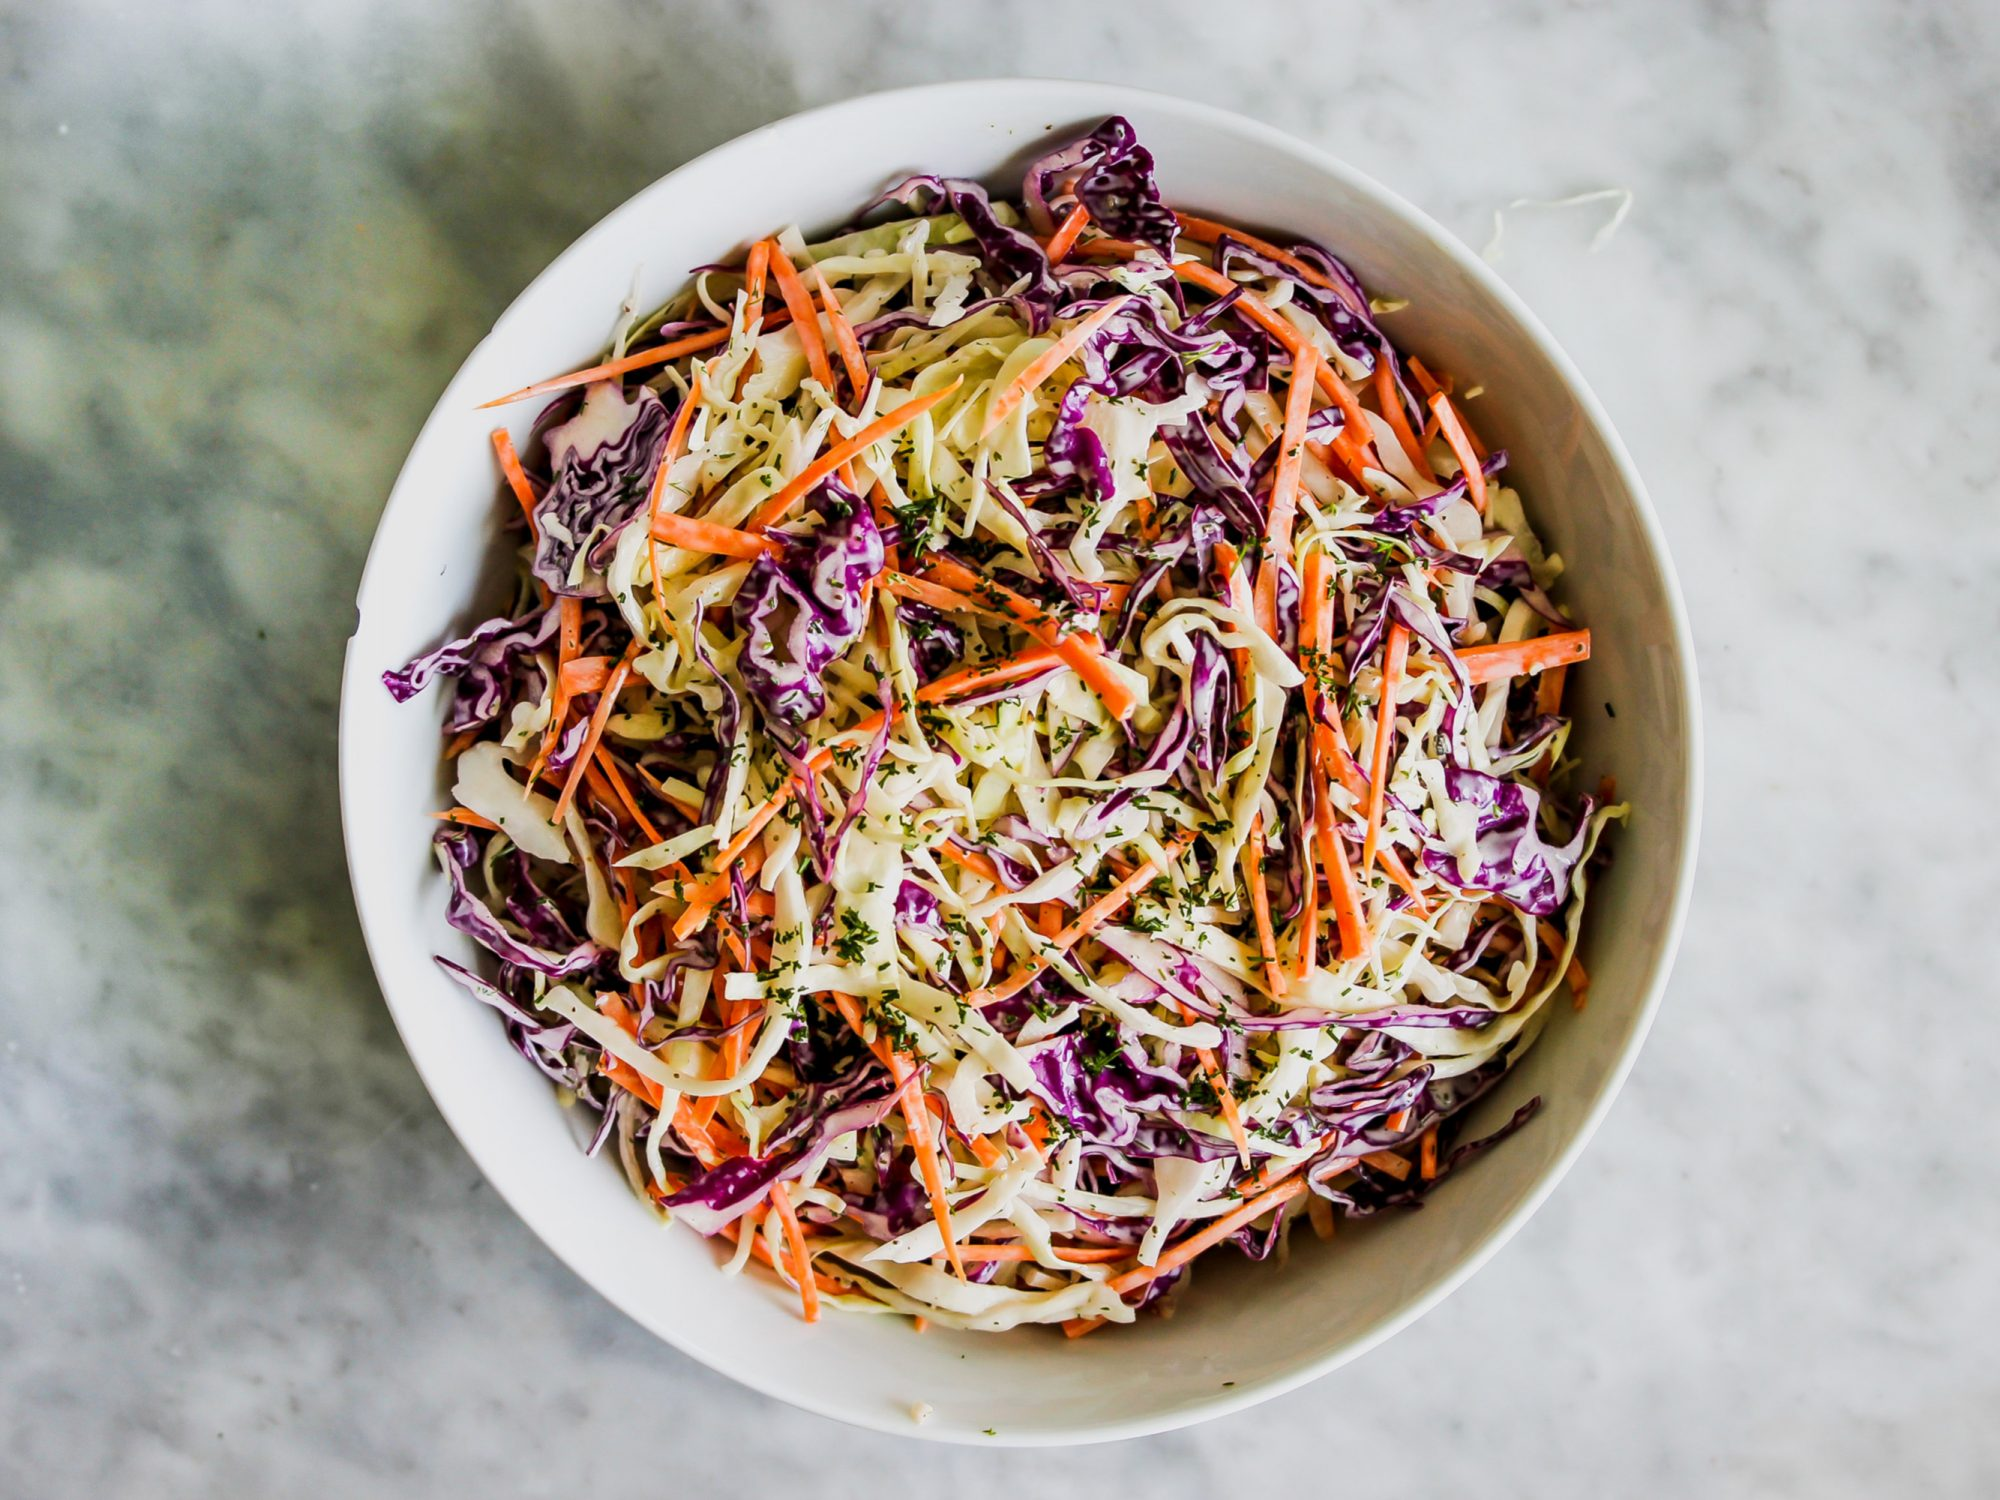 How to Make the Creamiest, Crunchiest Coleslaw You've Ever Tasted